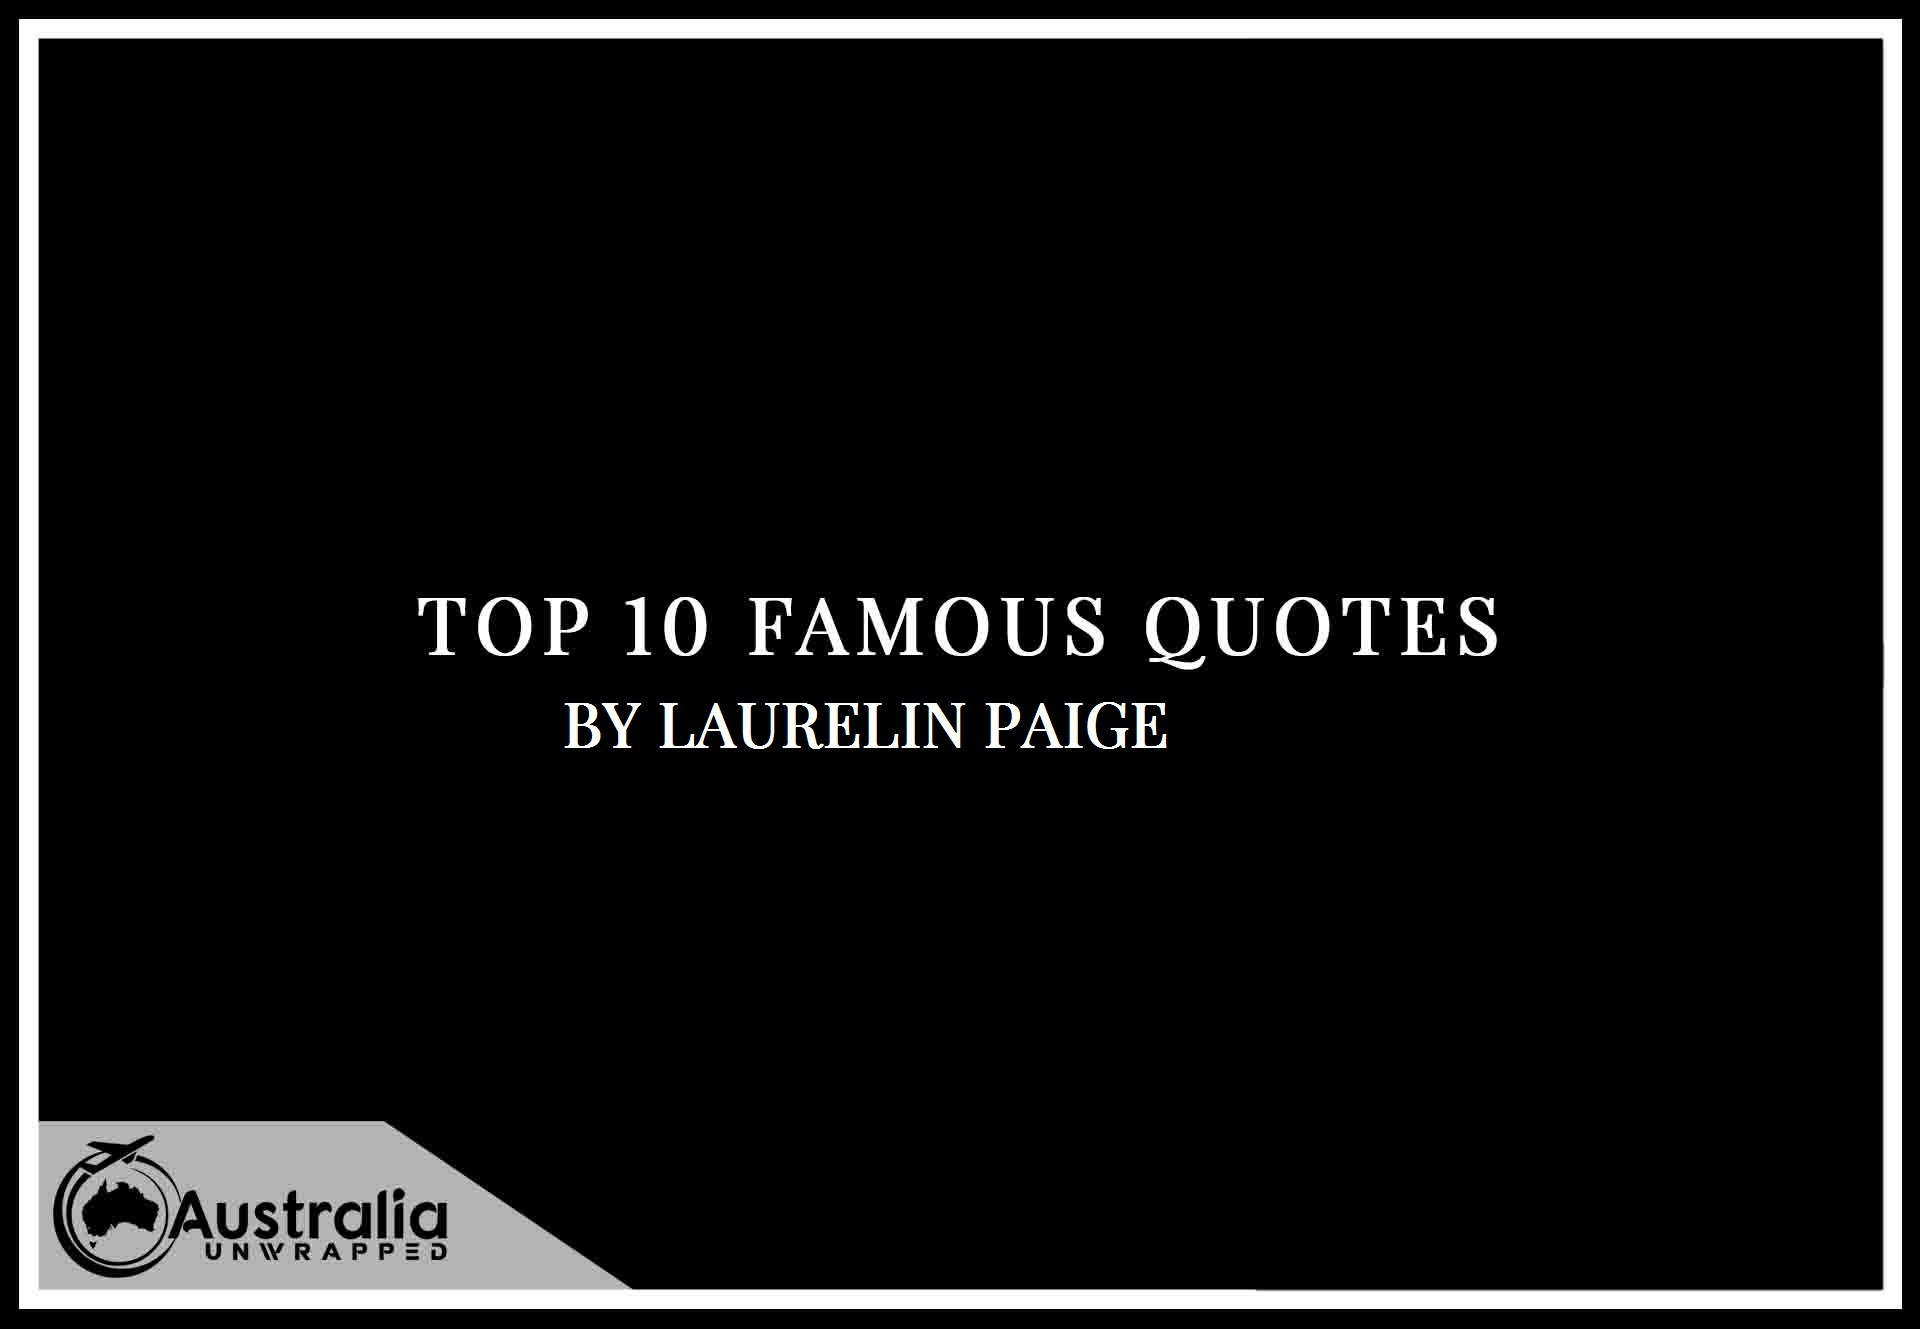 Laurelin Paige's Top 10 Popular and Famous Quotes